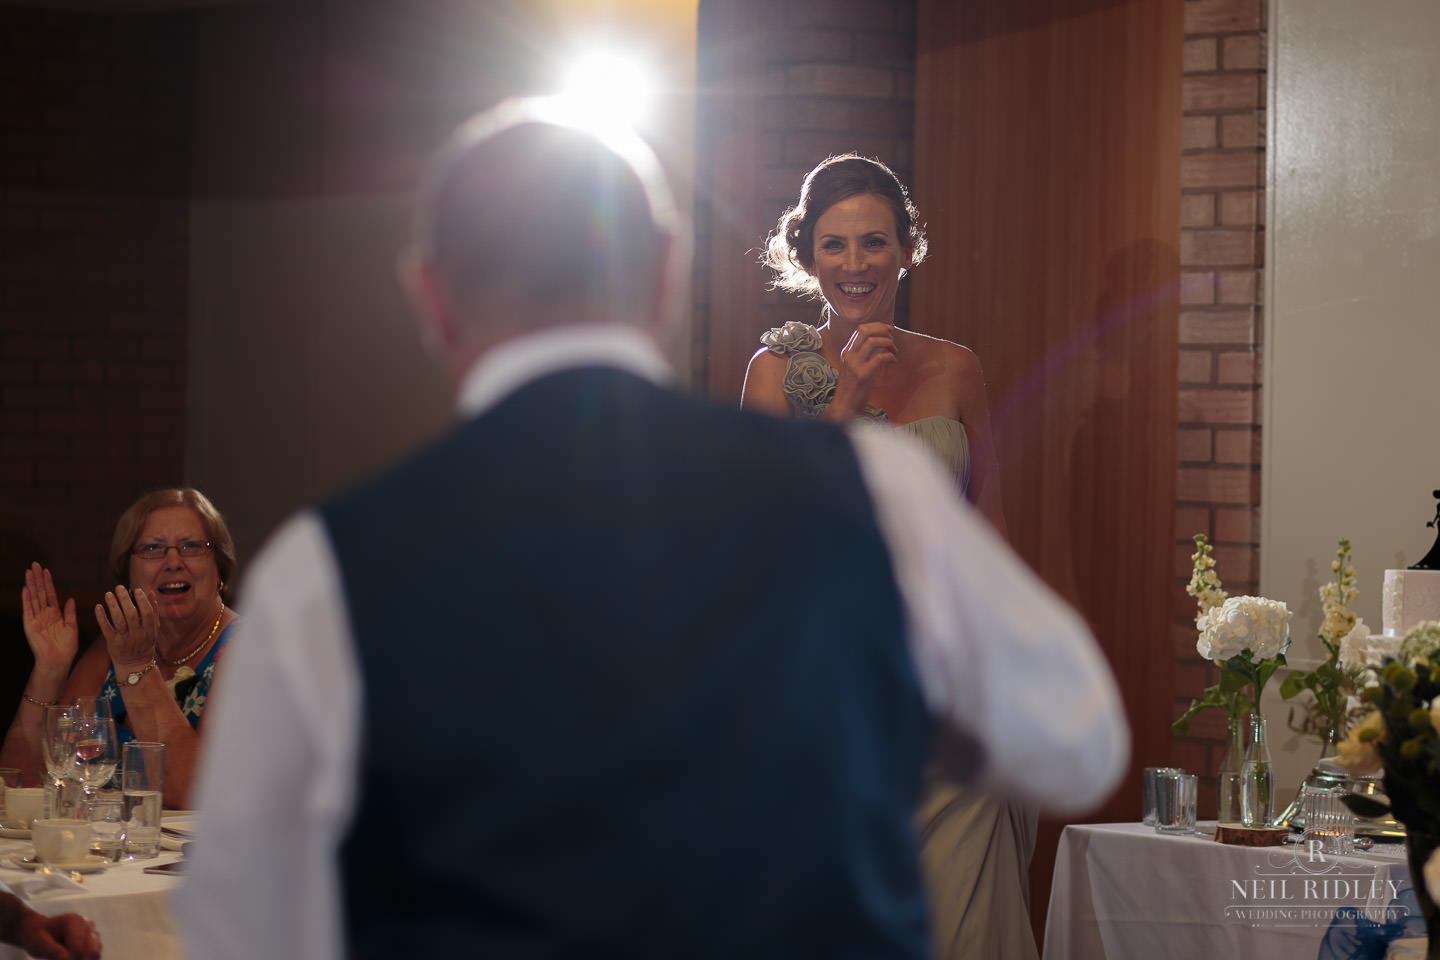 Bridesmaid comes up to recieve a present from the groom during the wedding breakfast at Maccdonald Portal Spa and Hotel